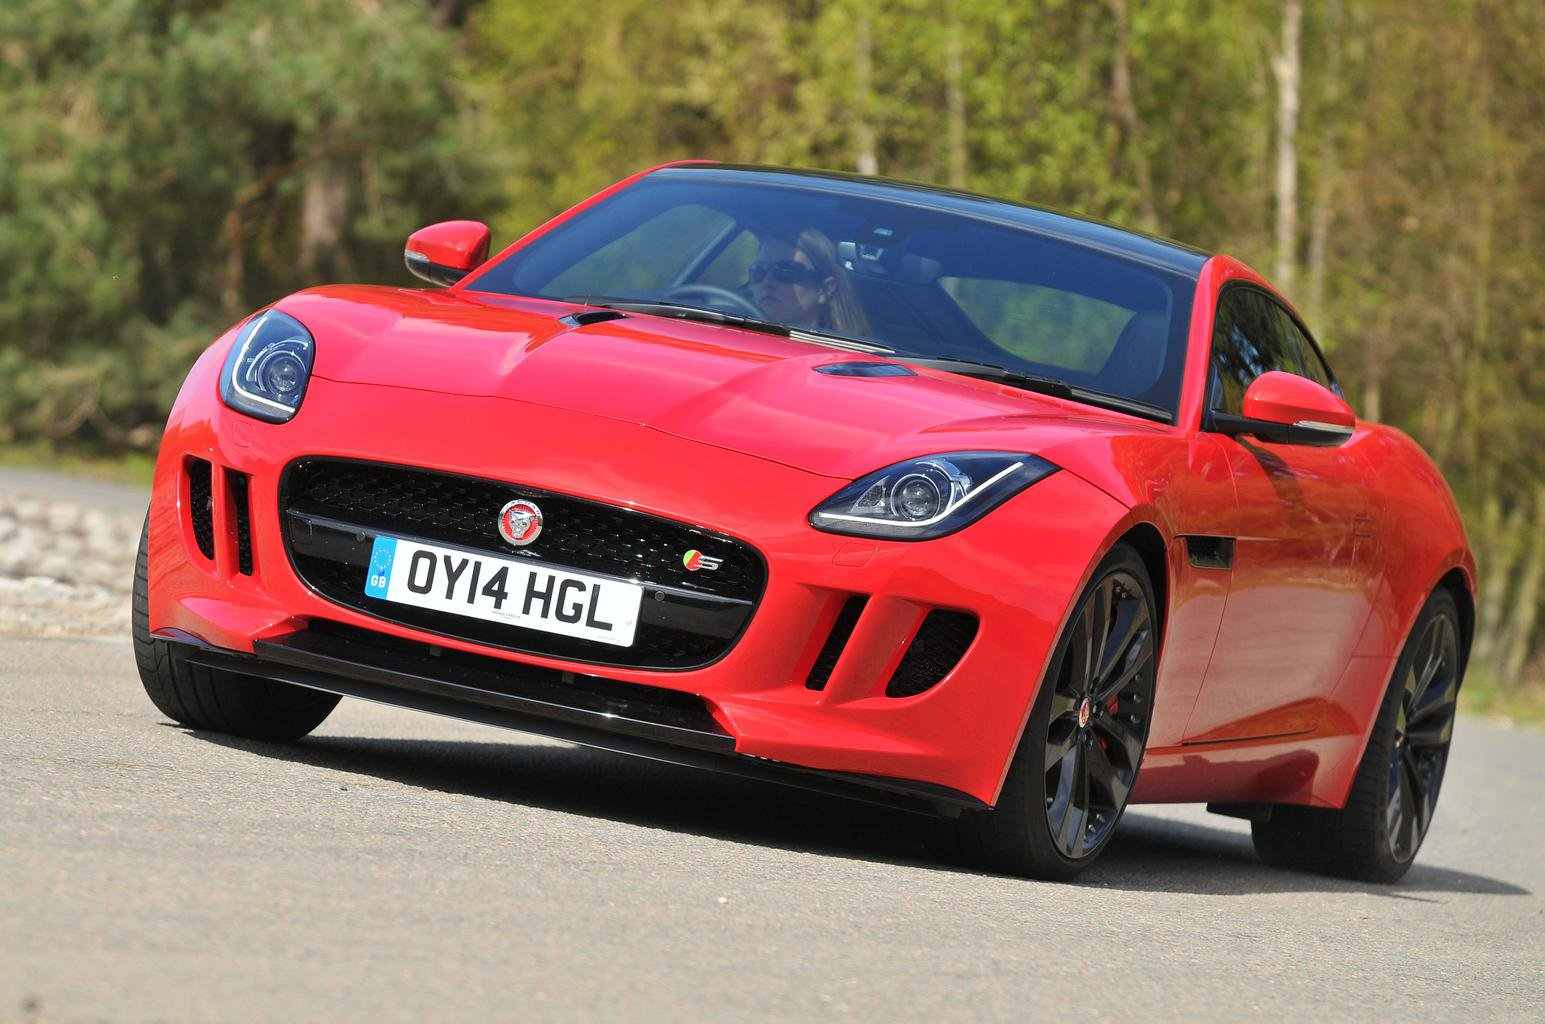 Used Porsche 911 vs Jaguar F-Type Coupe